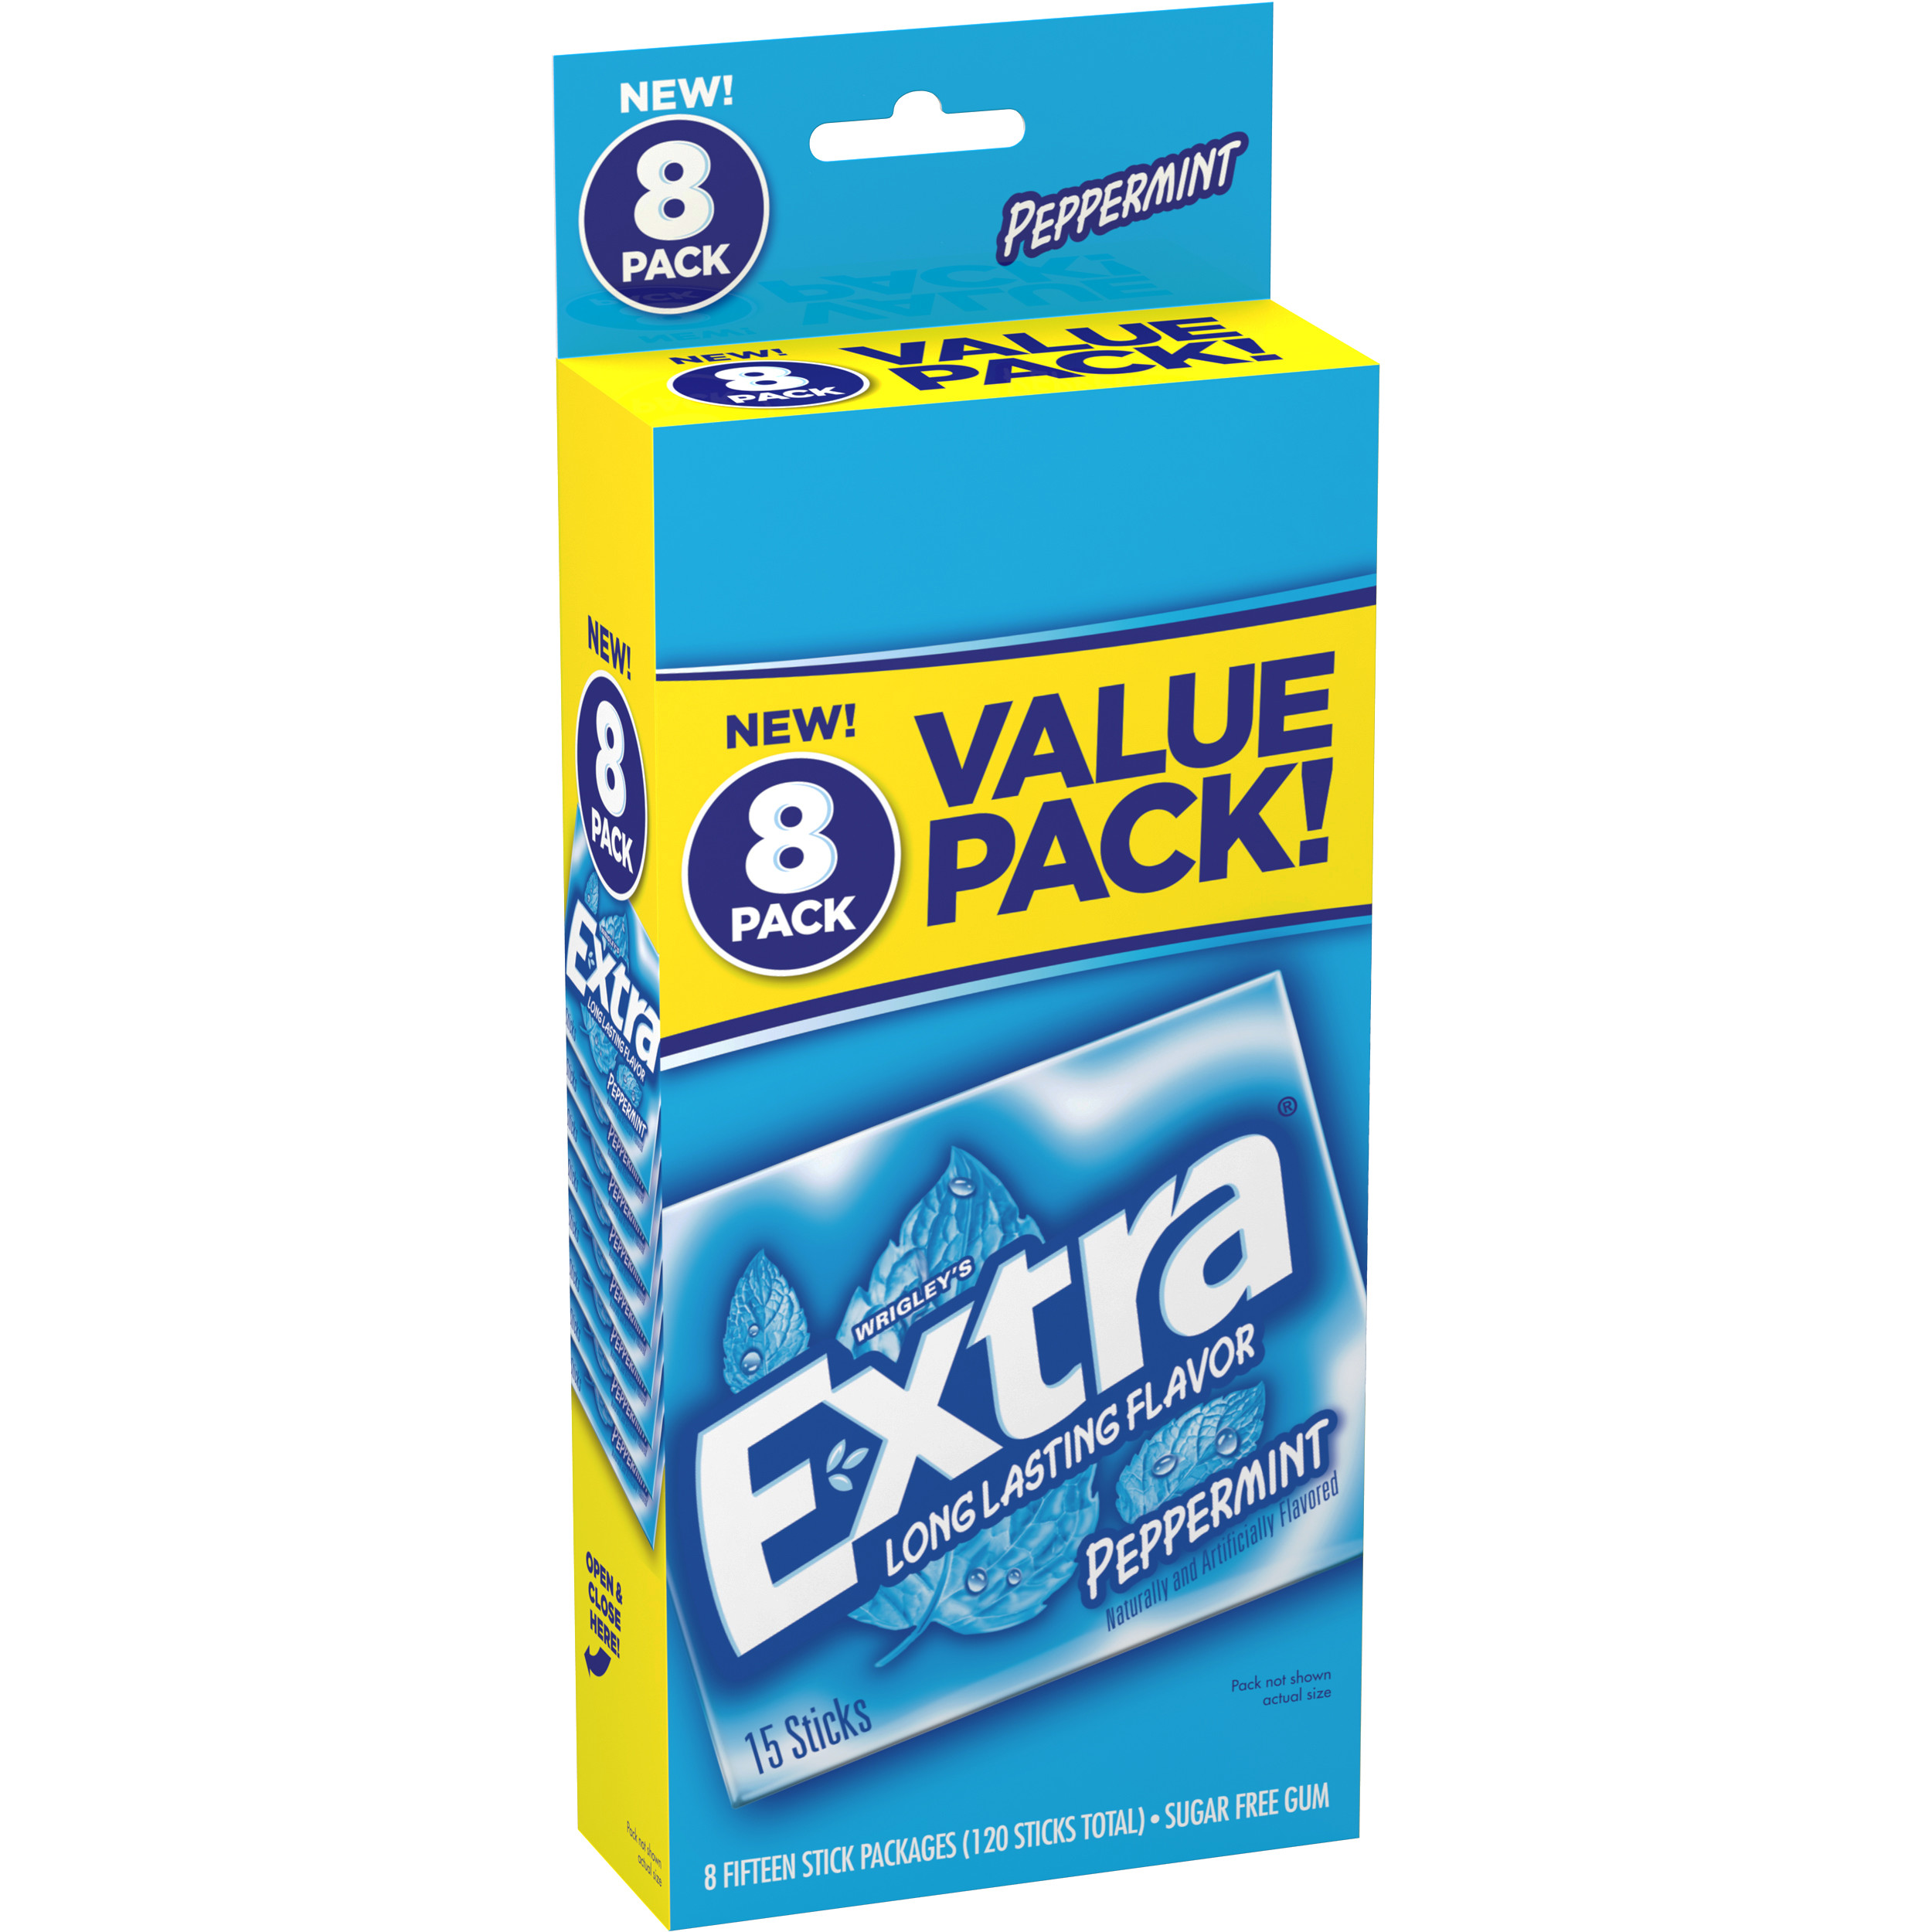 Extra Peppermint Sugarfree Gum, value pack (8 packs total)